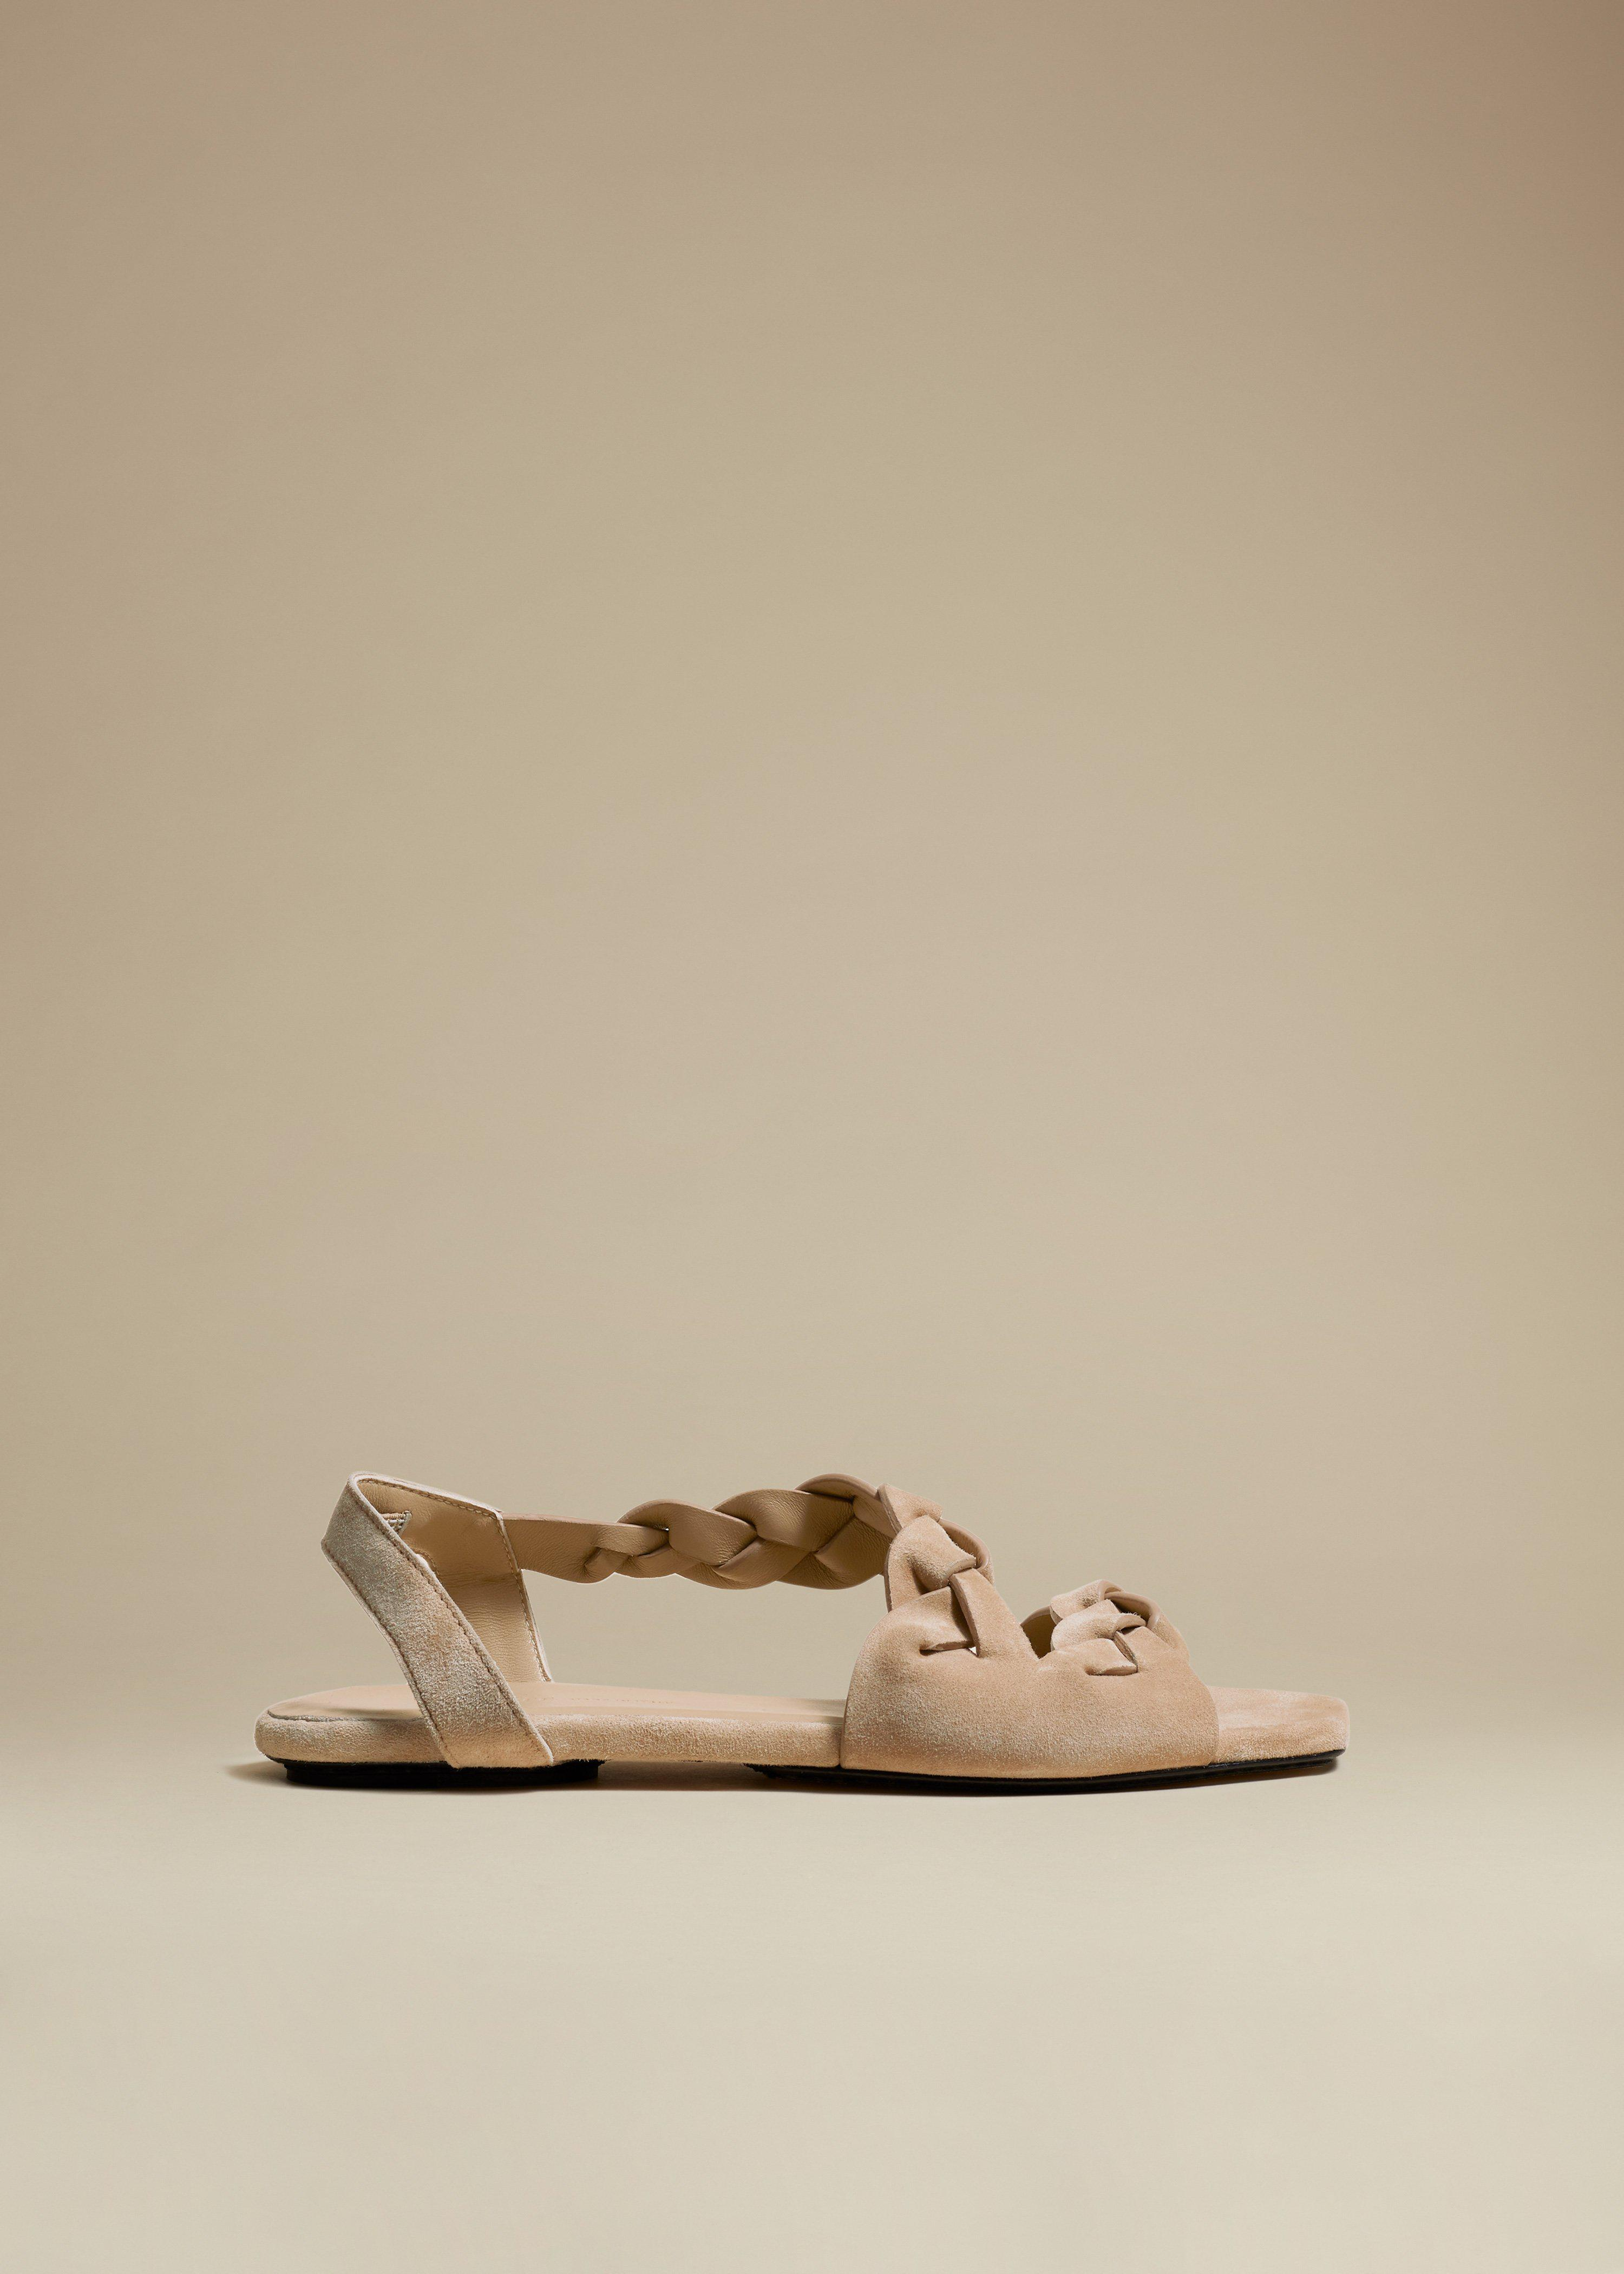 The Torrance Sandal in Biscuit Suede